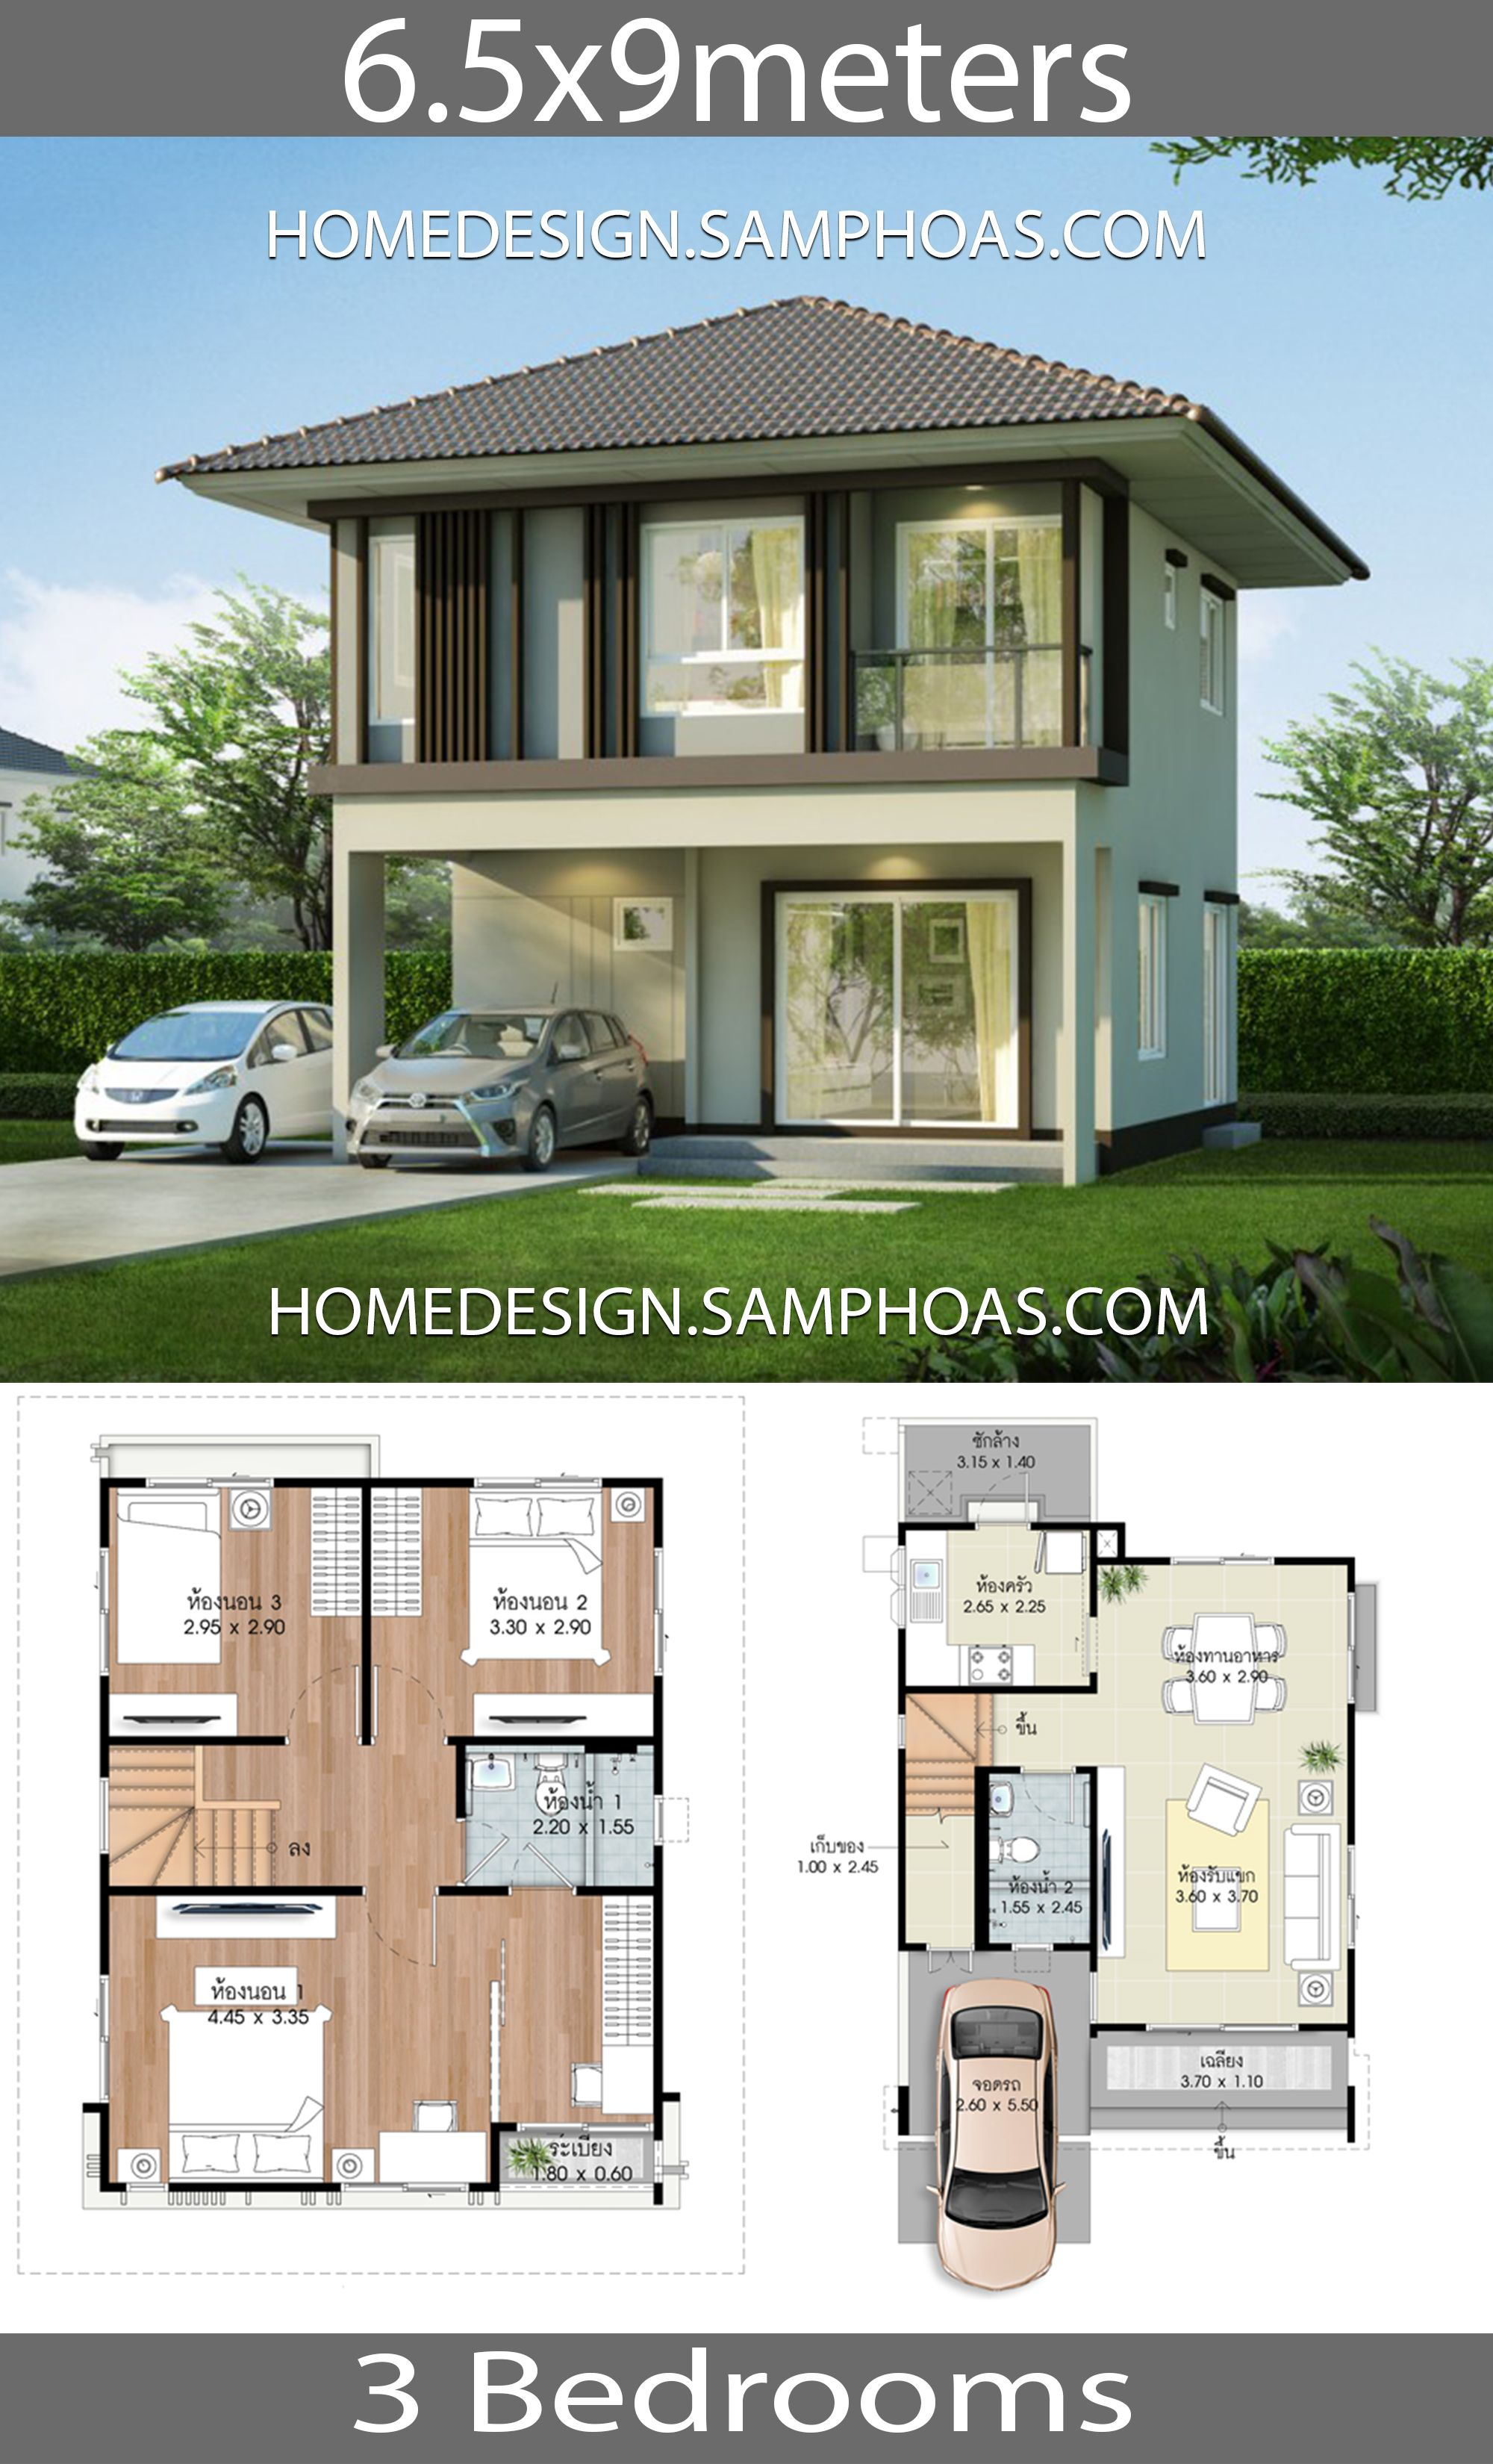 10 Beautiful House Plans You Will Love House Plans 3d In 2020 Beautiful House Plans House Plans Home Design Plans